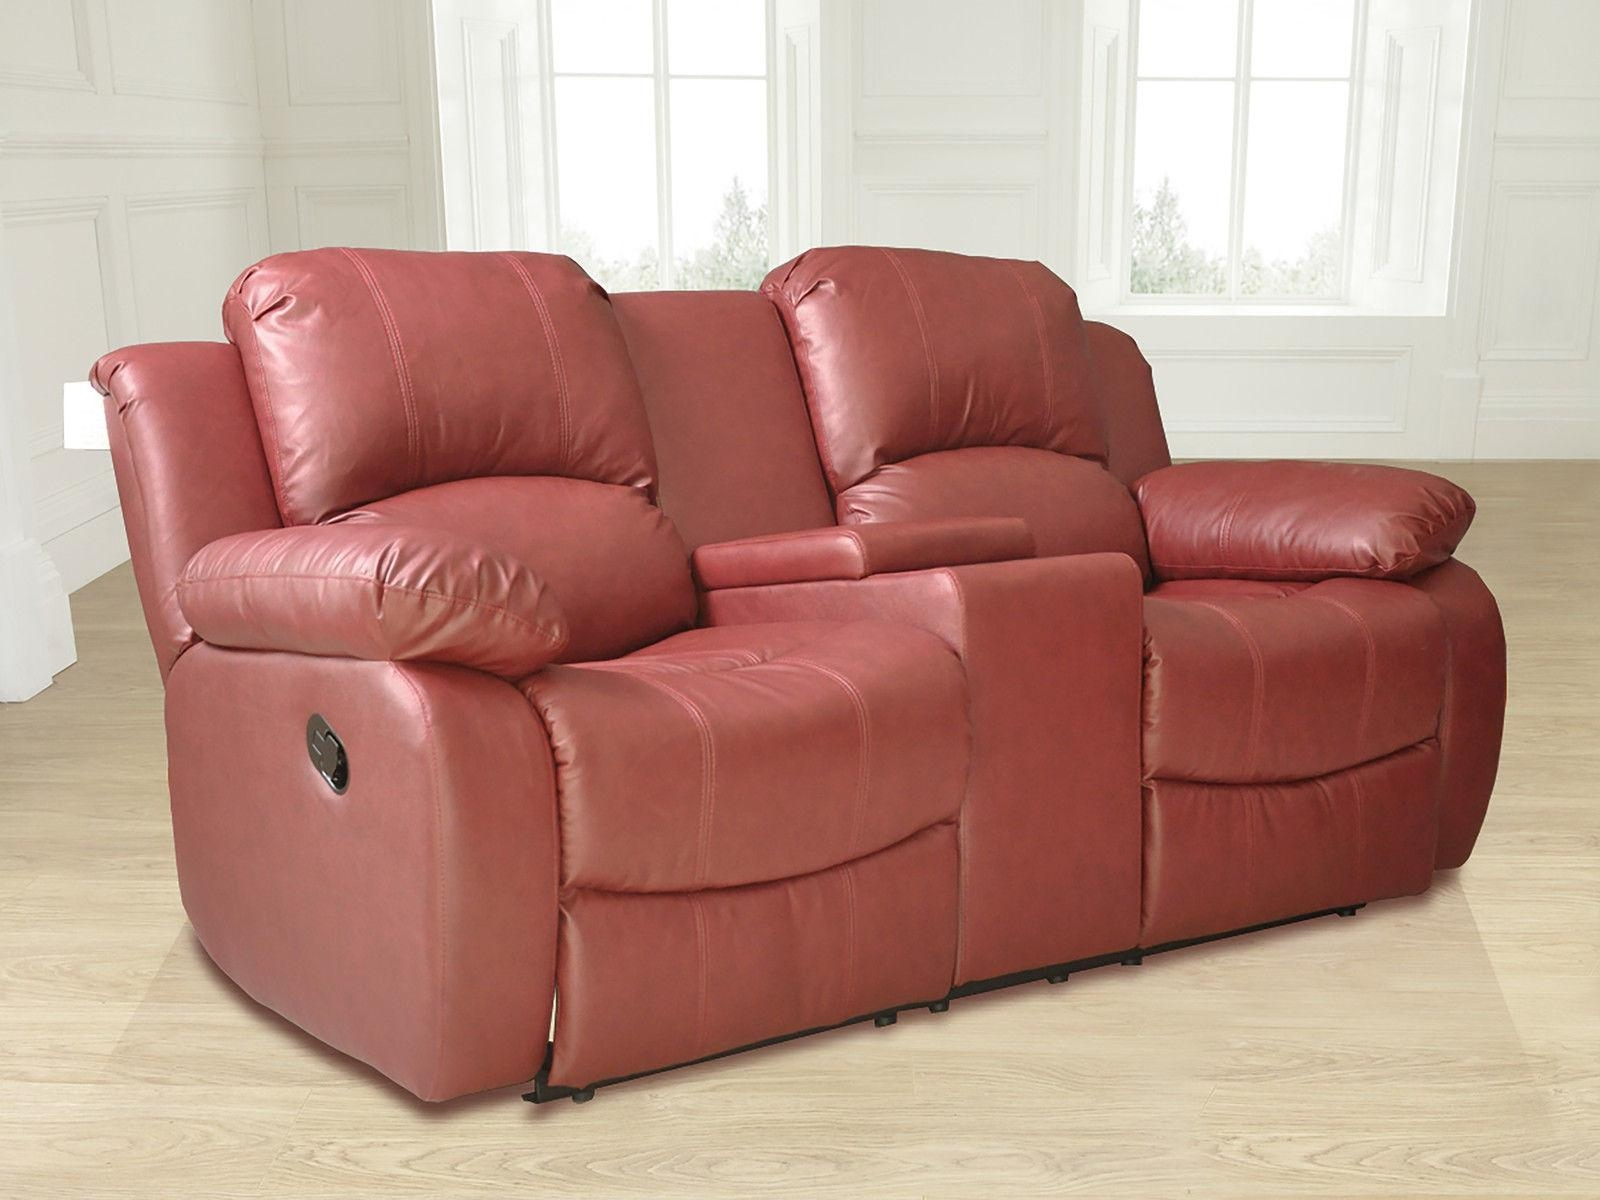 Living Room Sofa Cinema Seater Unusual S L1600 We Sell Any Sofas In Unusual Sofas (View 20 of 20)